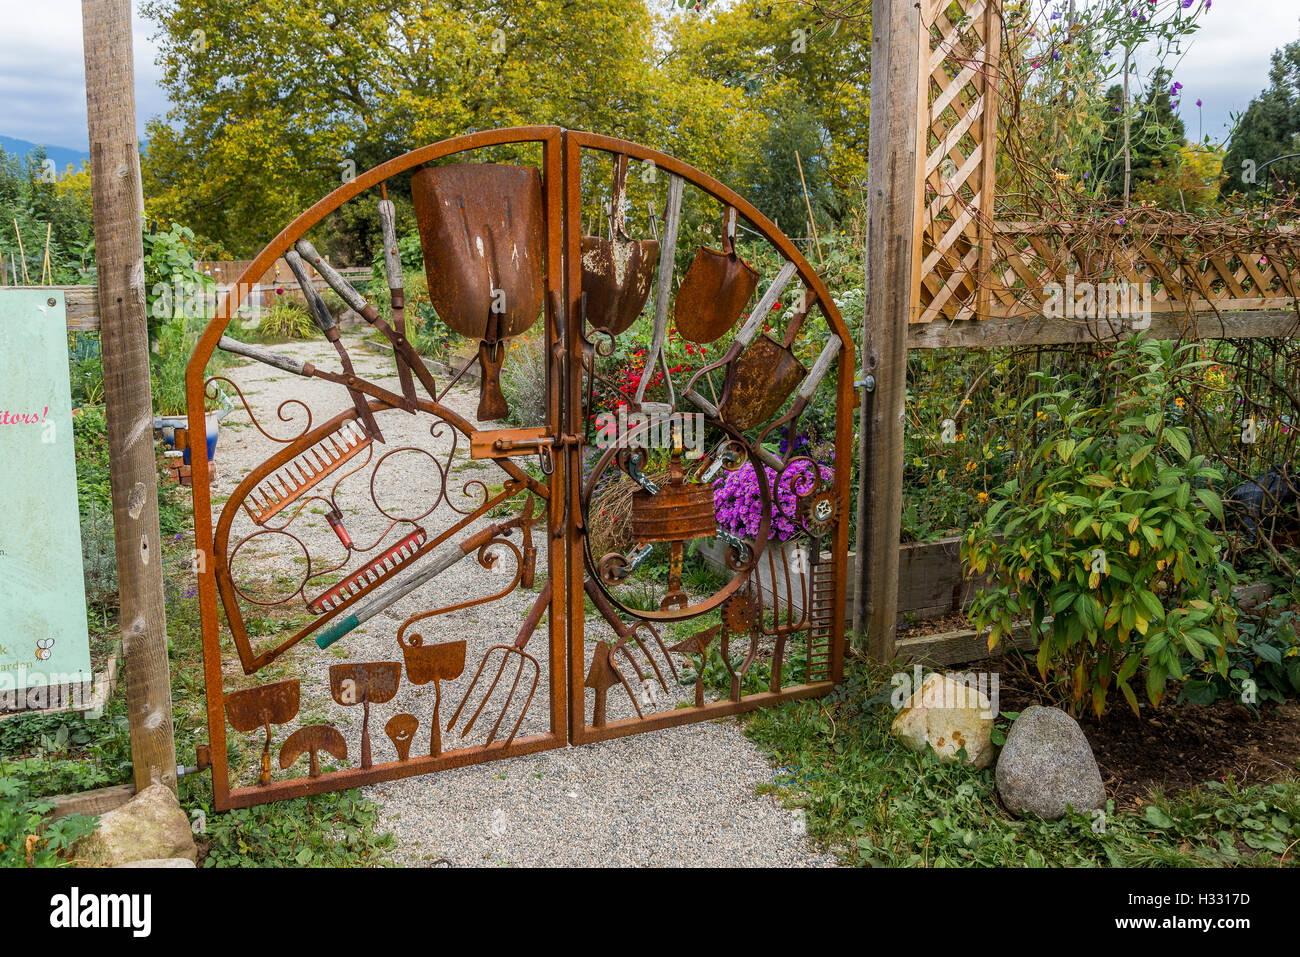 Community Garden Gate Made Of Old Rusty Tools.